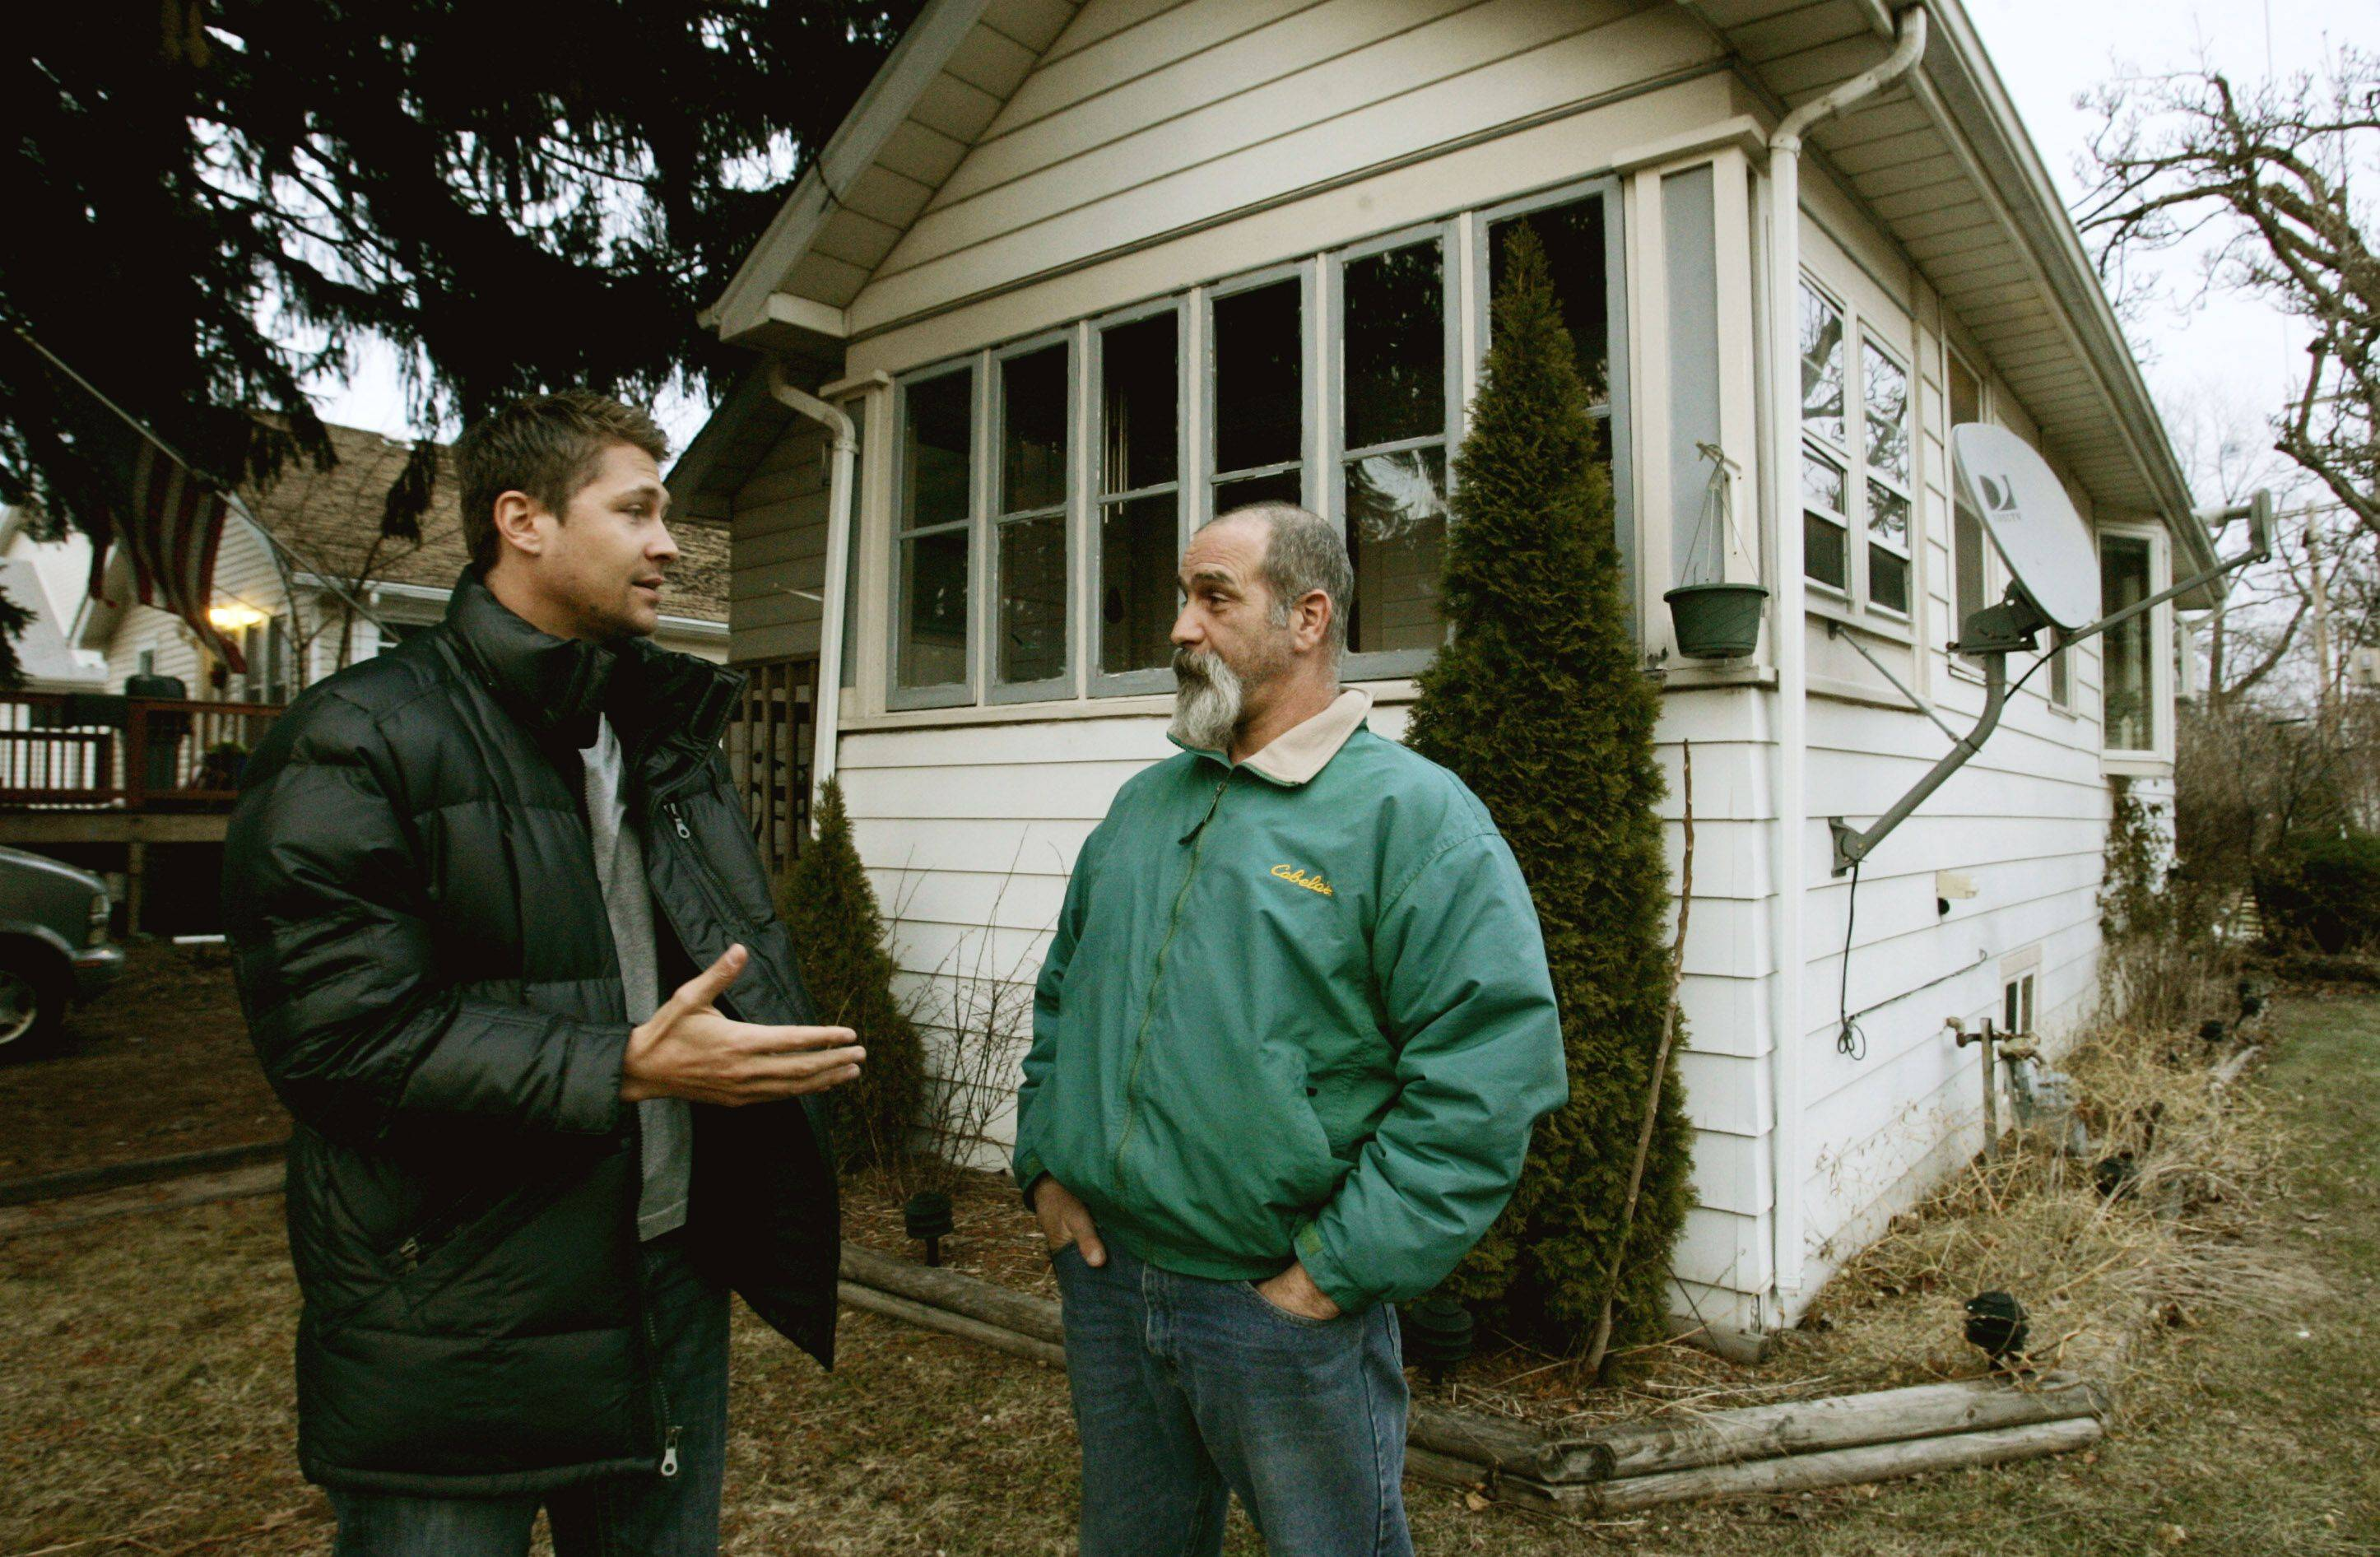 Adam Ackerman, left, a real estate investor who helped start the Foreclosure Defense Group in Ro